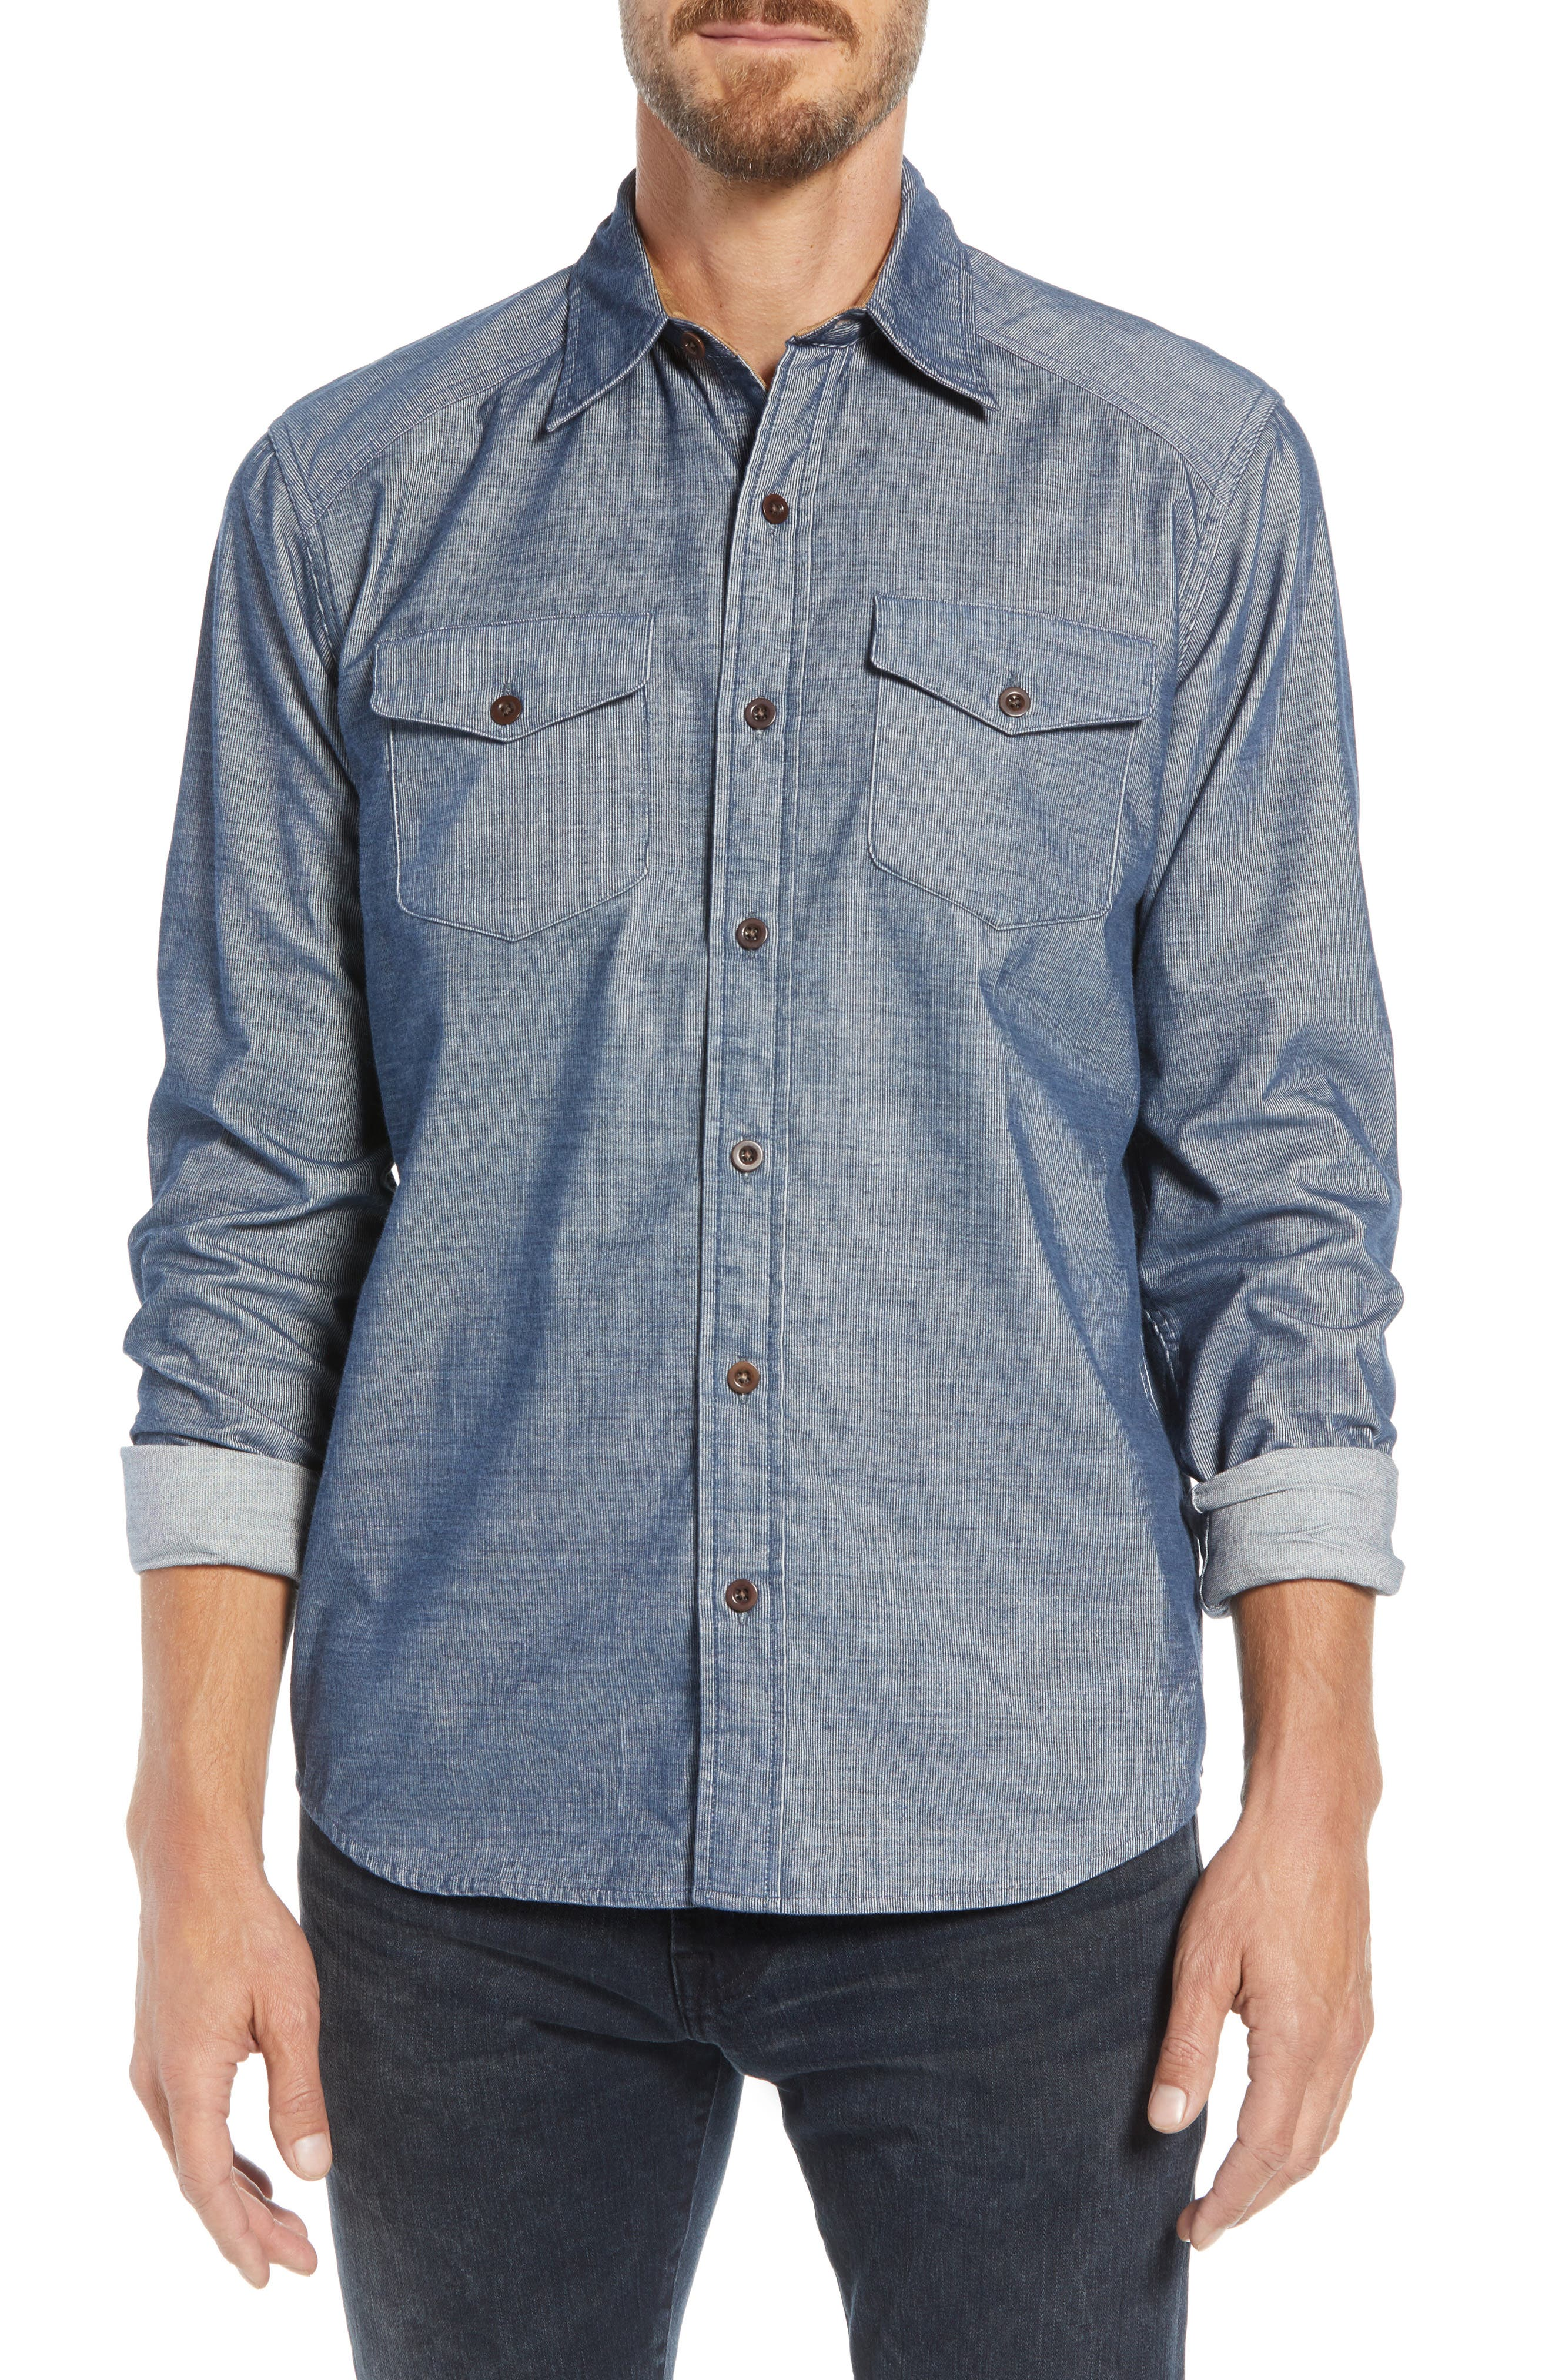 John Addison Engineer Shirt,                             Main thumbnail 1, color,                             BLUE HEATHER